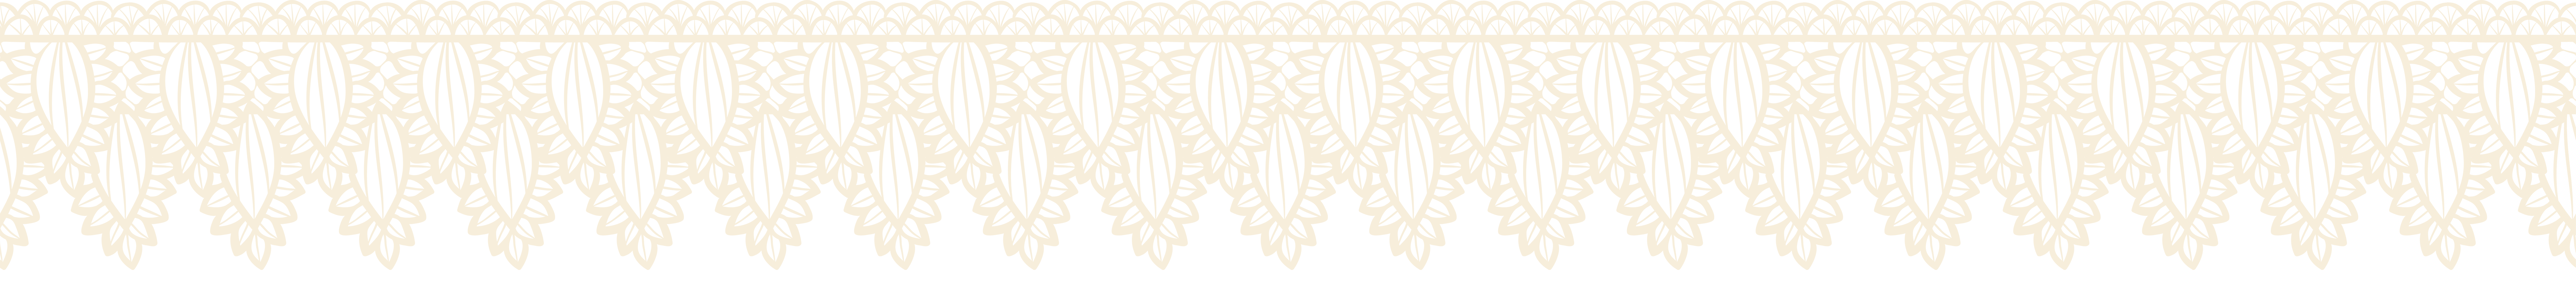 Clip art image gallery. Lace border png